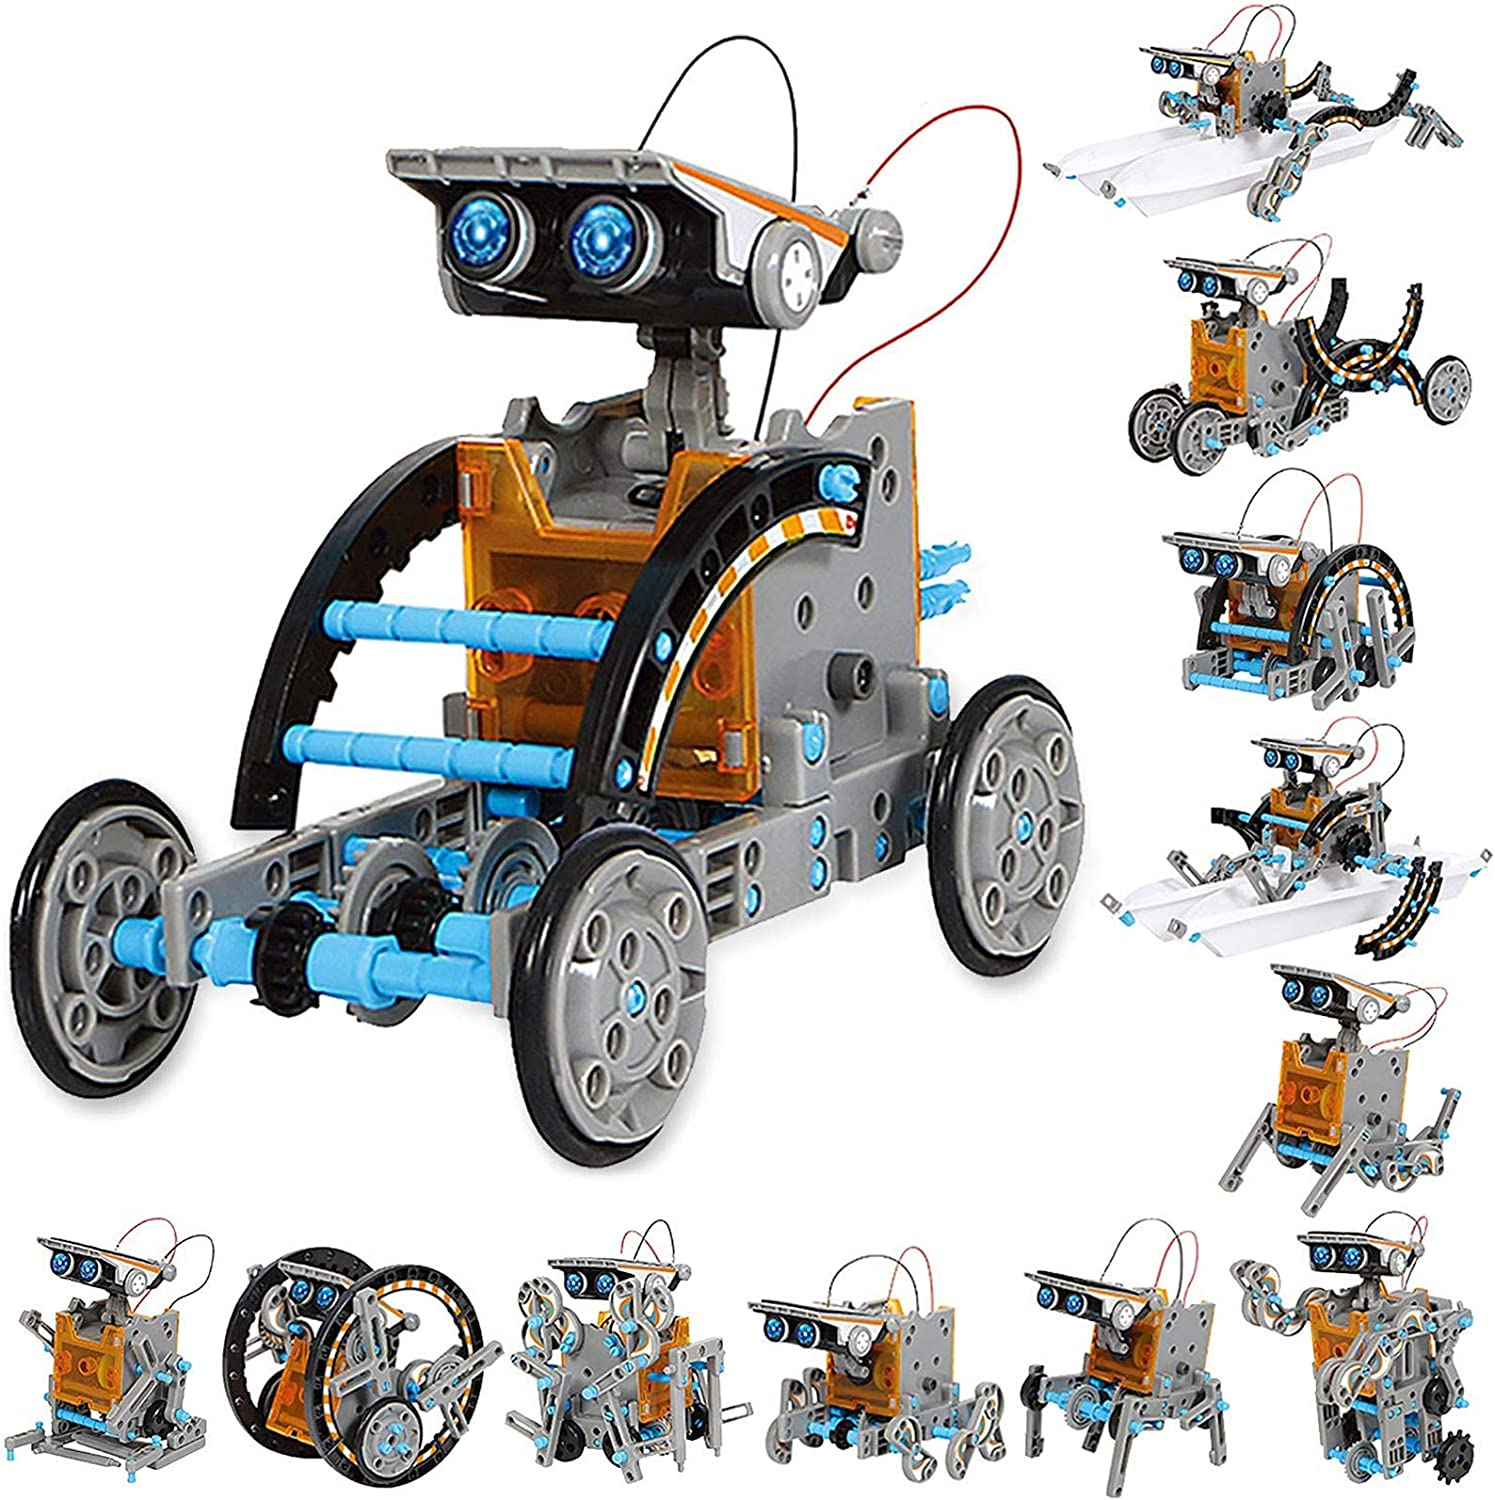 190 Pieces 12 Toy Configurations in 1 for Endless Building Fun STEM Solar Robot Creation Kit /Solar Powered DIY Science Experiments and STEAM Toys for Kids Ages 10 and Up/